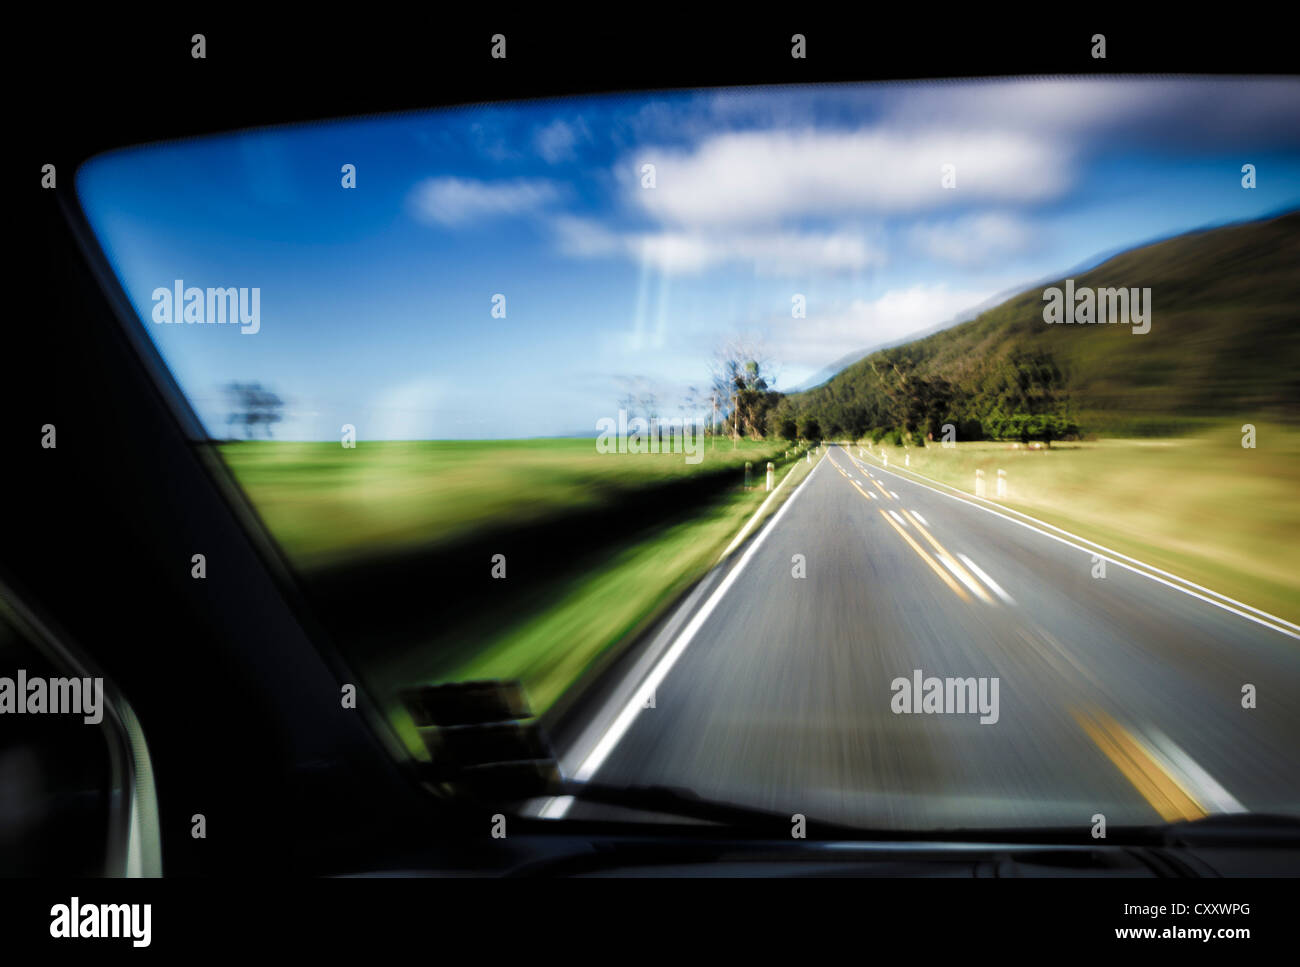 Driving under the influence of alcohol, driving on the left, view from inside a car on the road, driving fast, West - Stock Image